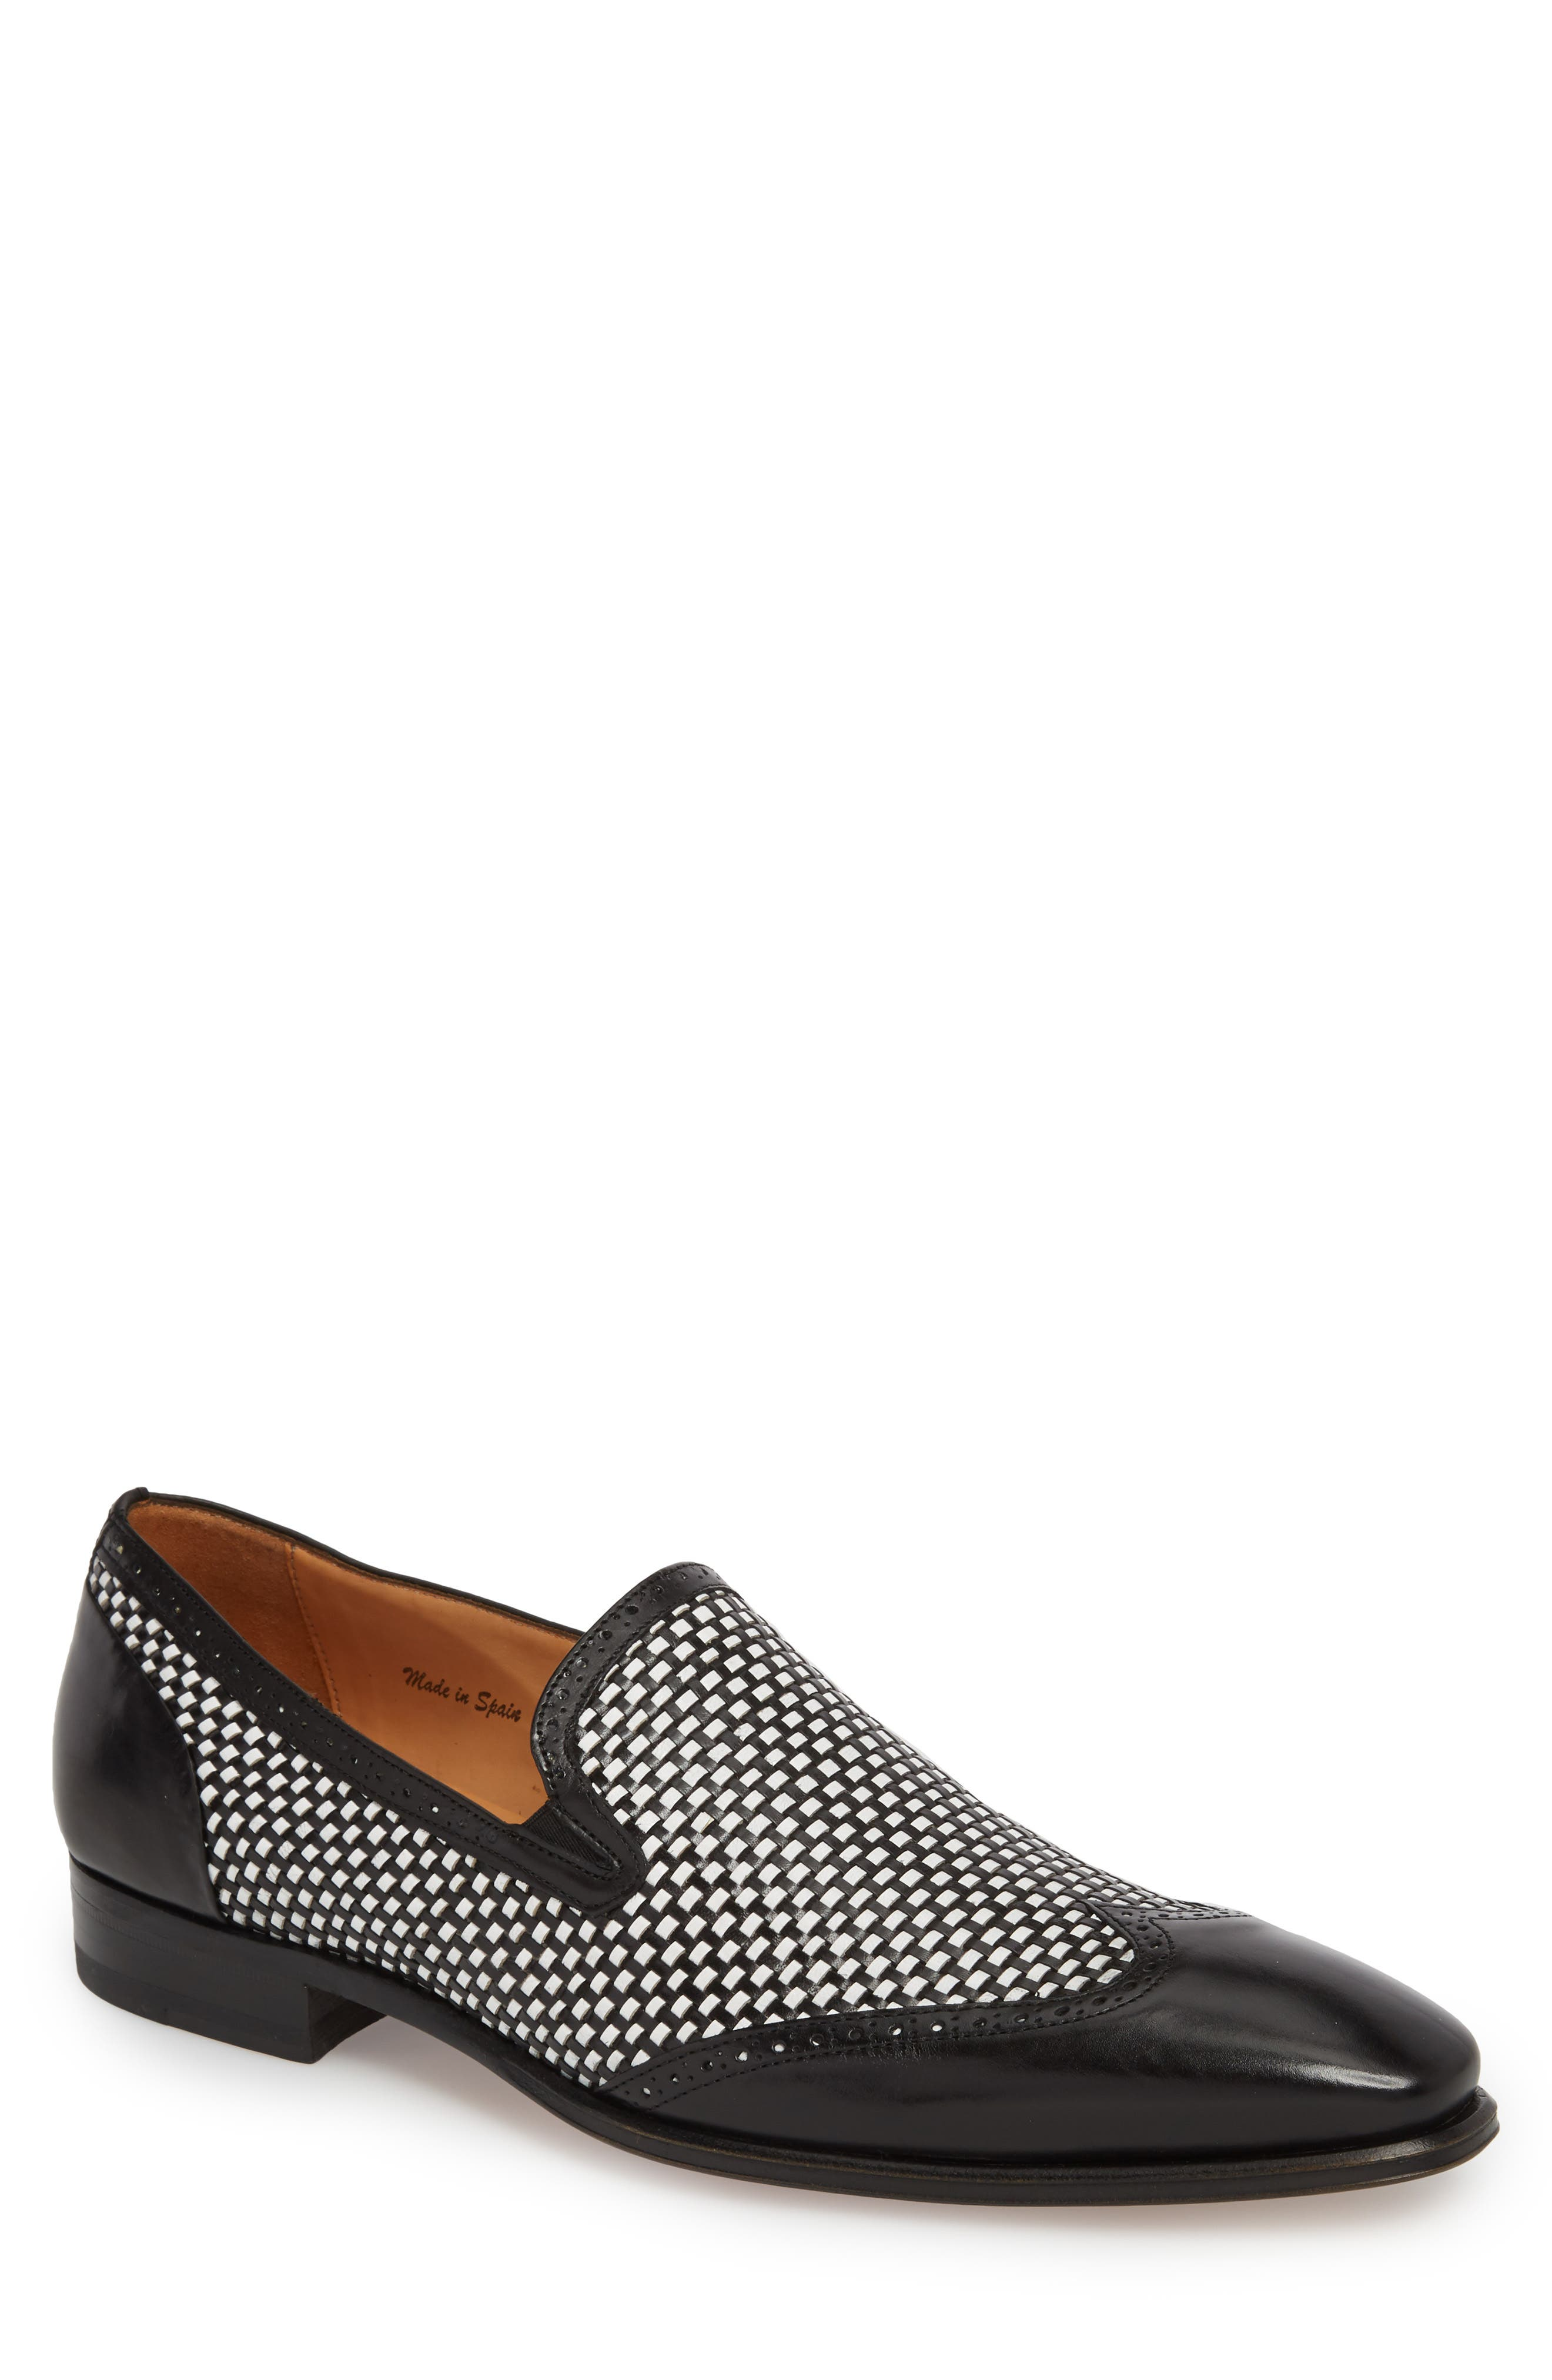 Nepos Woven Wingtip Loafer,                         Main,                         color, Black/ White Leather